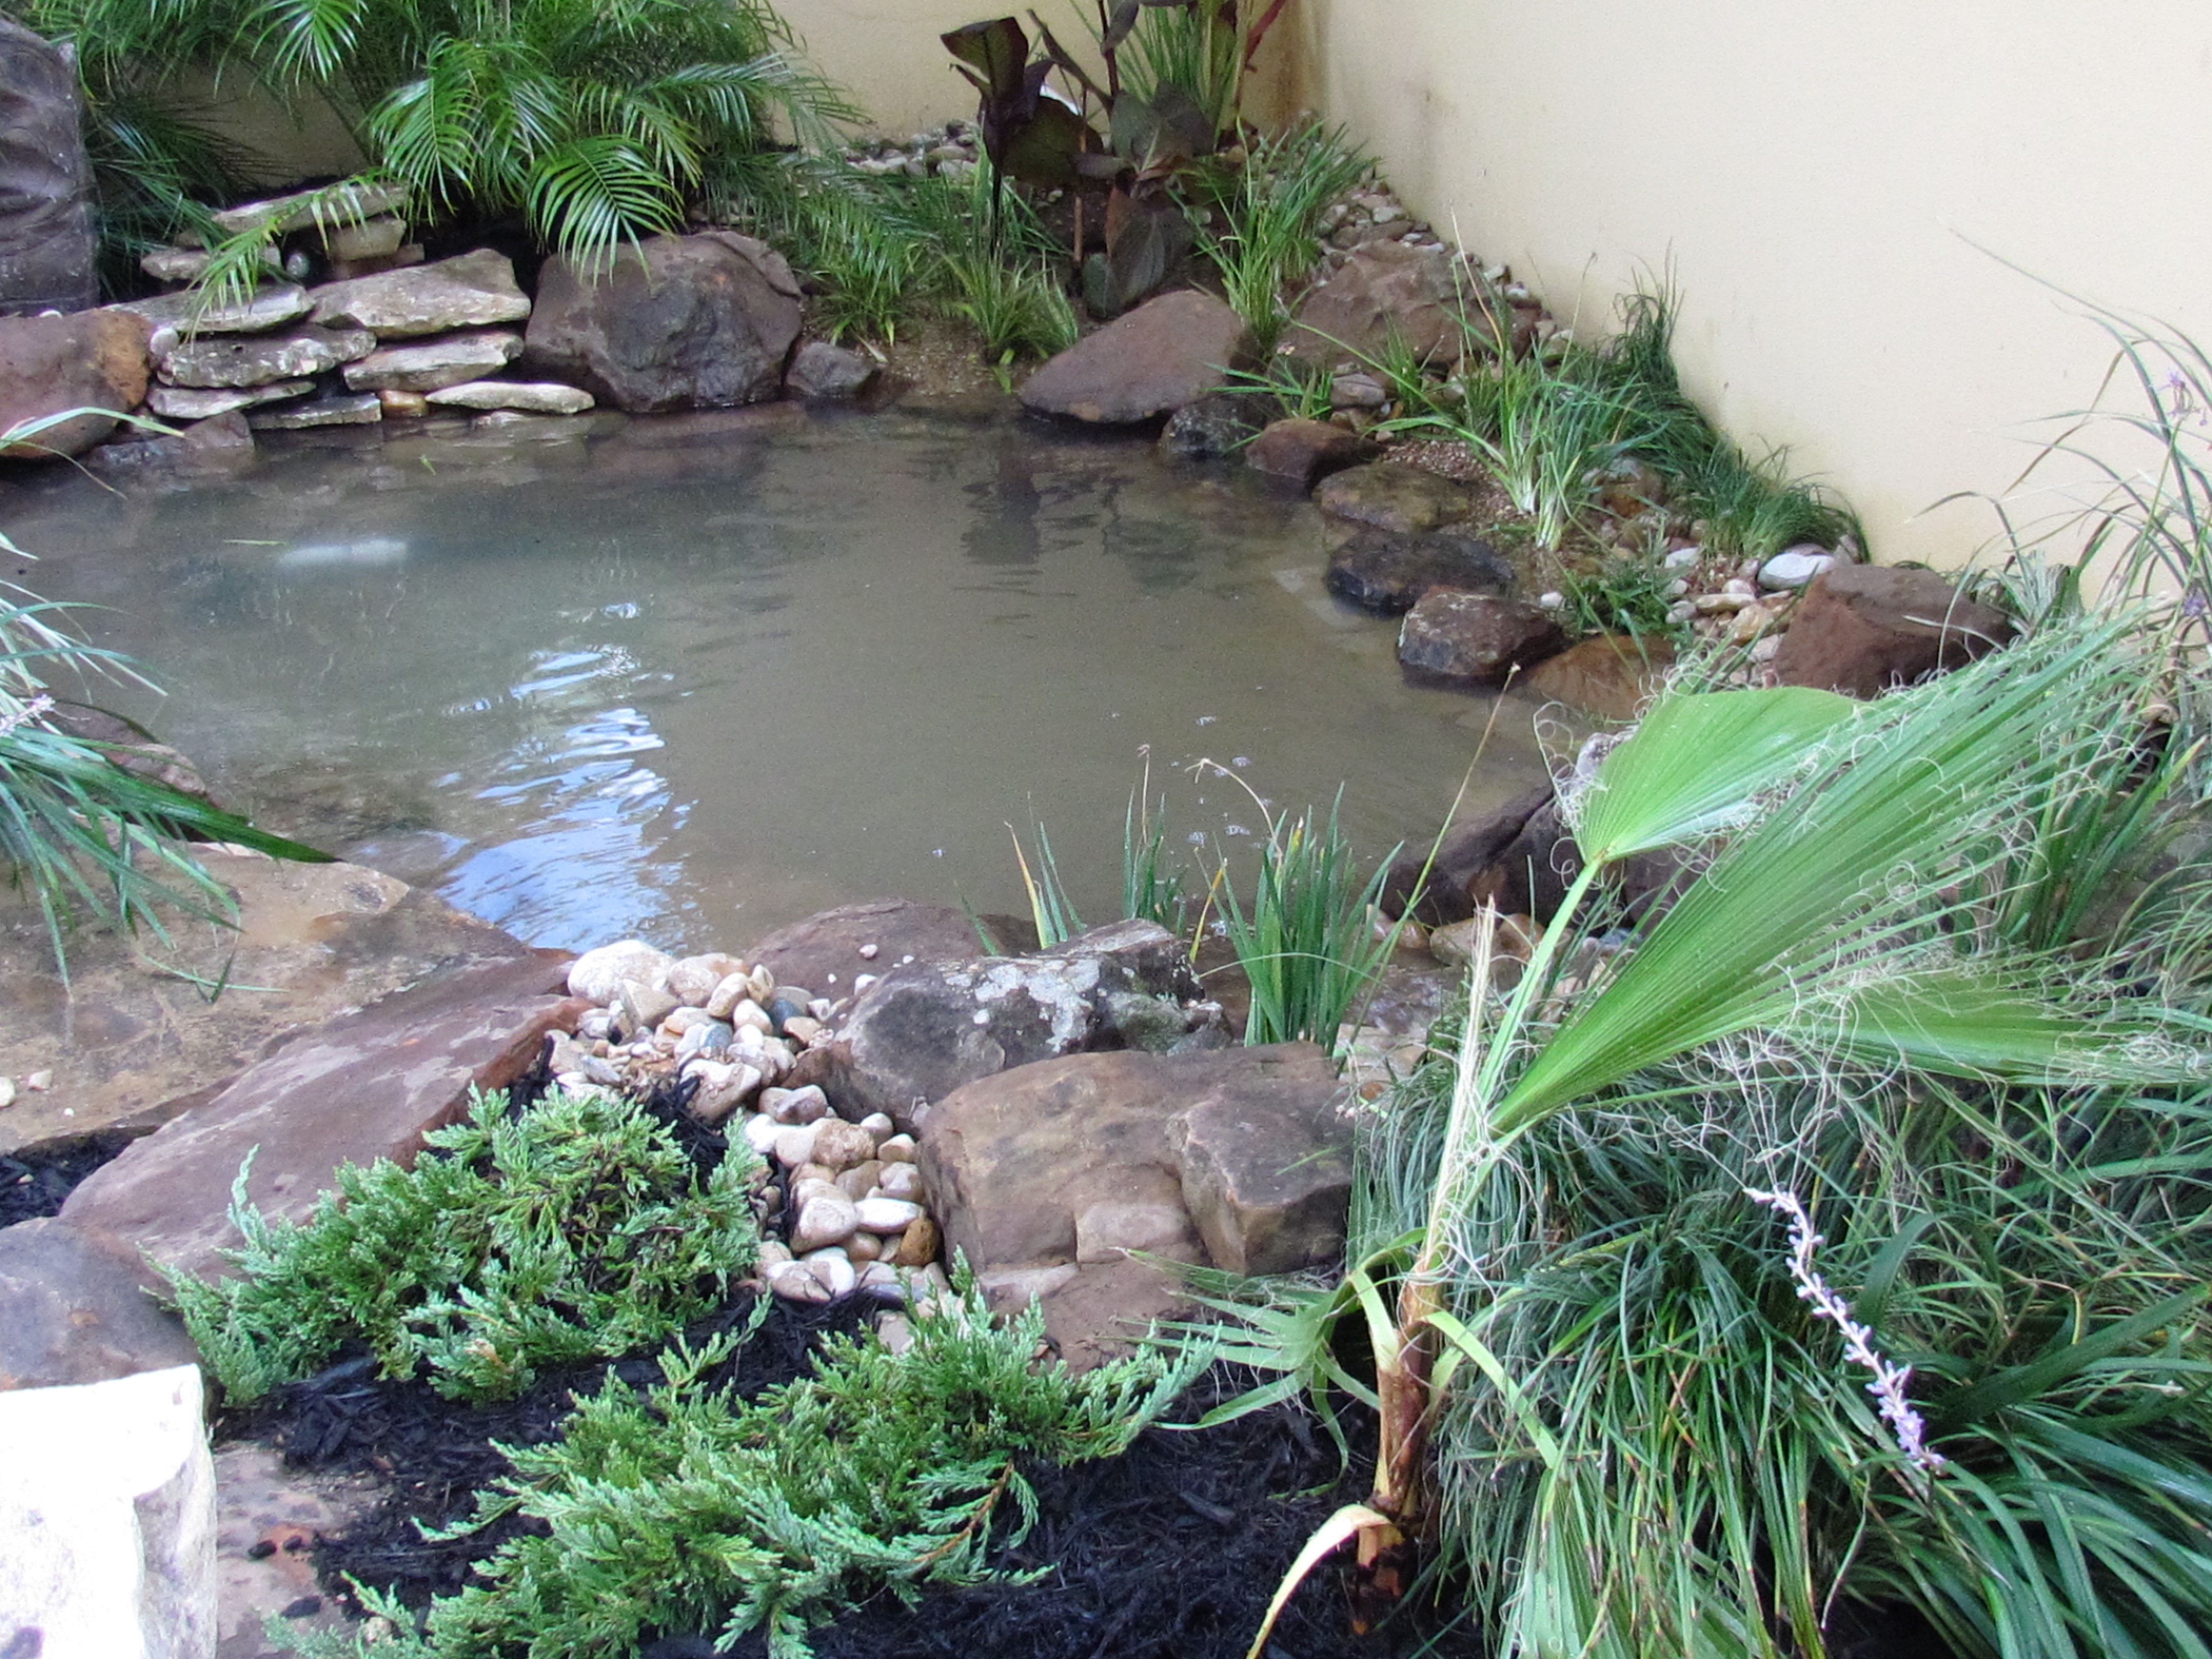 1000 images about pond by front door ideas on pinterest for Pond edging ideas